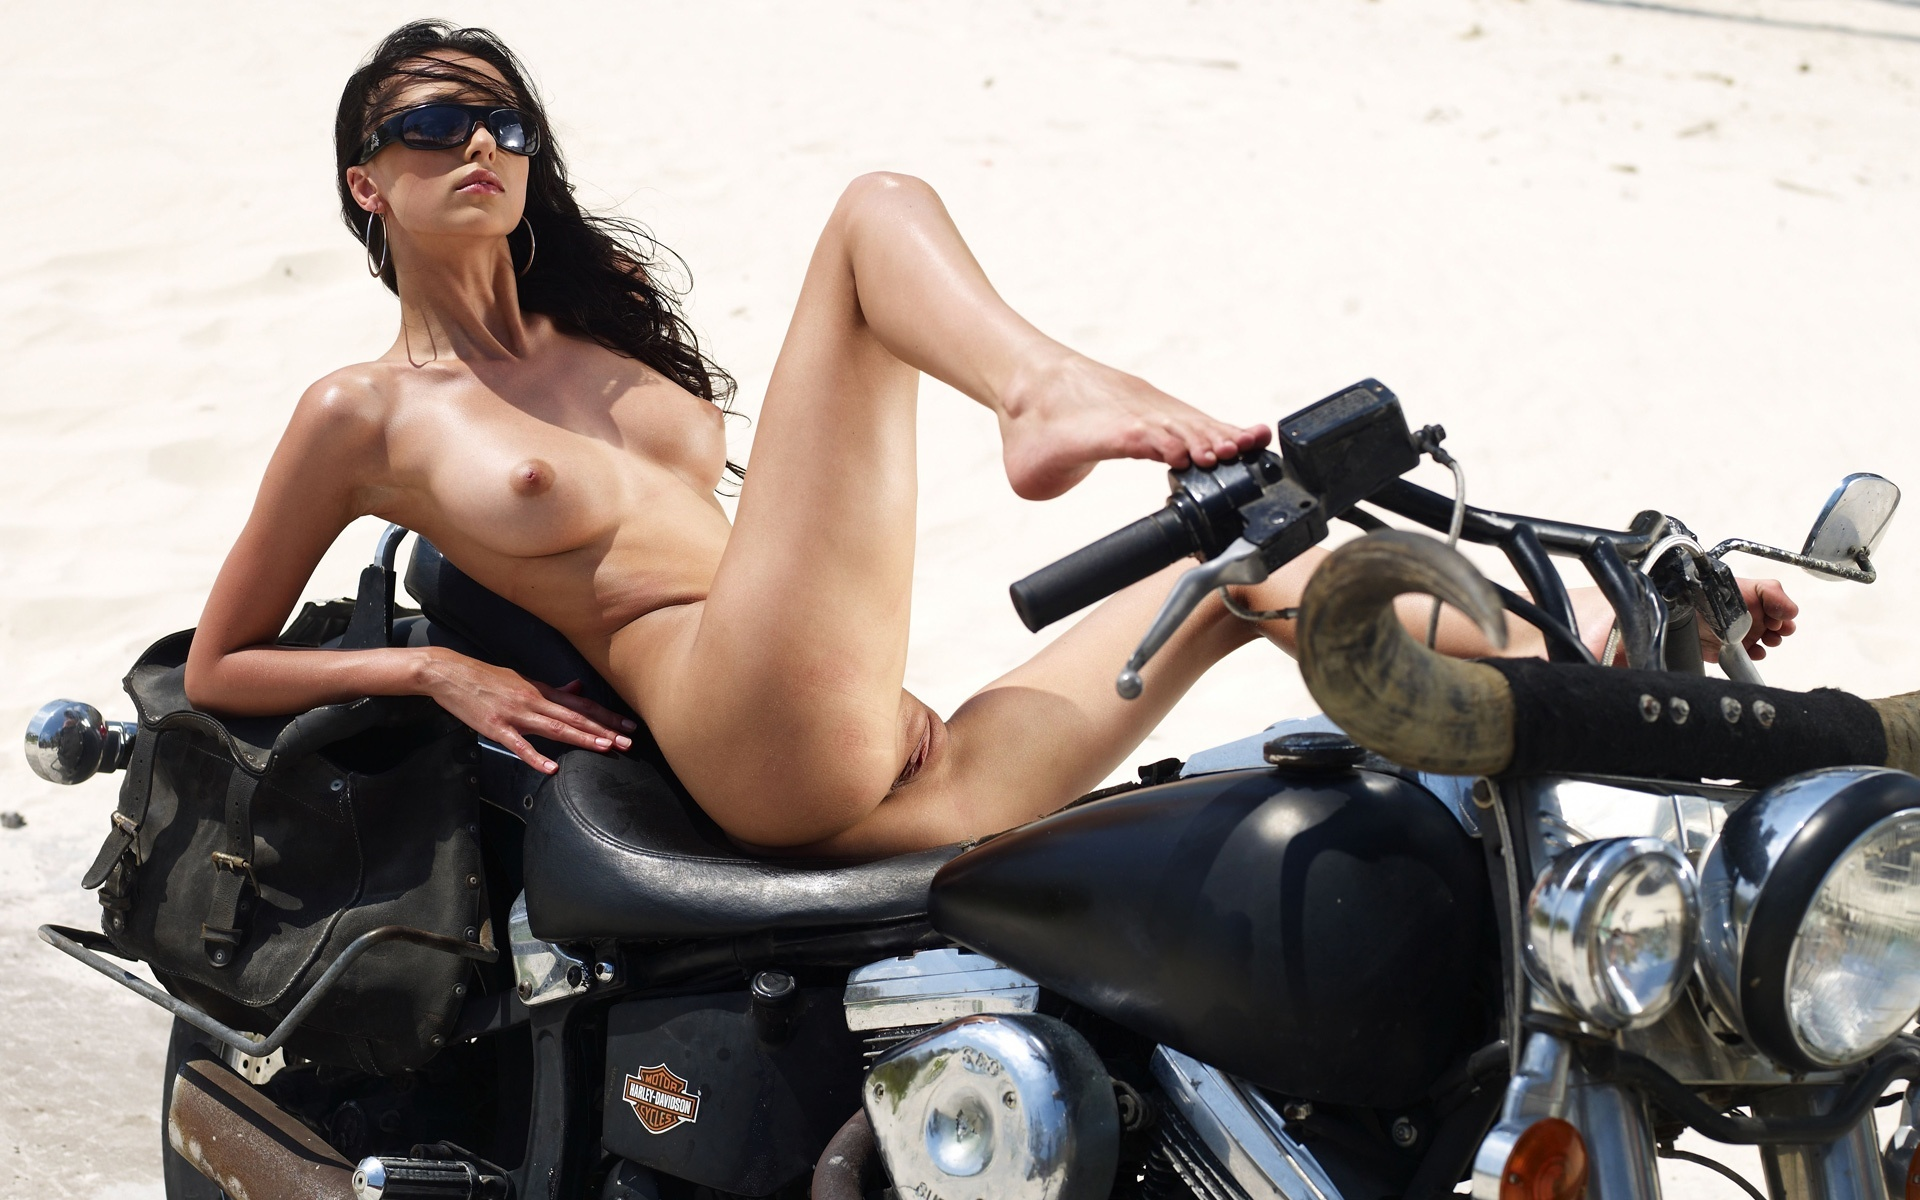 girl on bike nude with dick in pussy